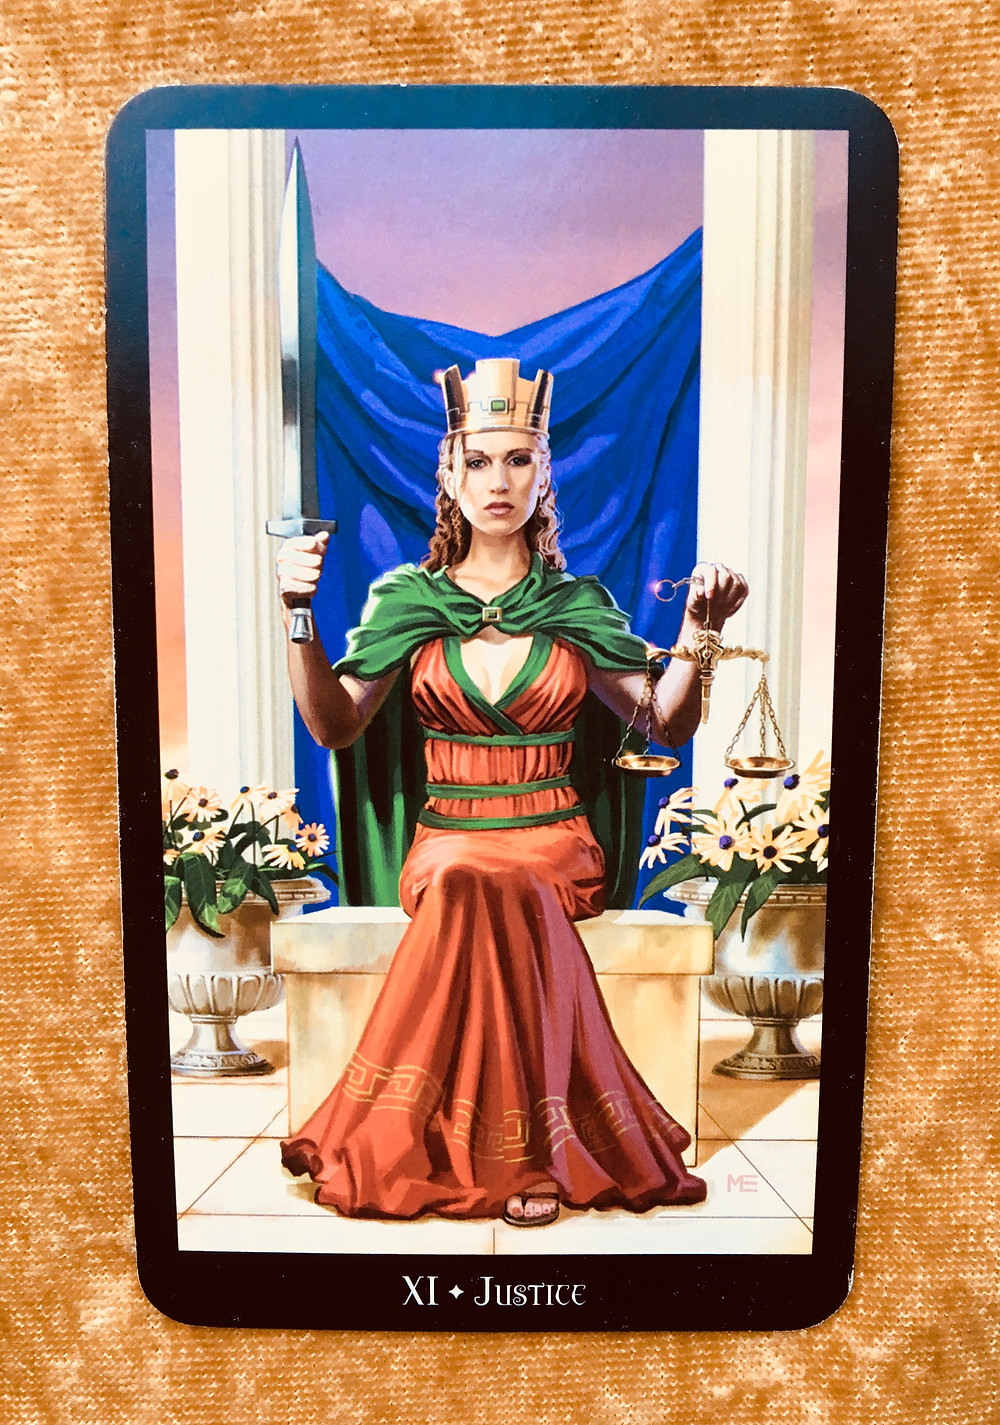 What the Tarot Cards Mean: Justice